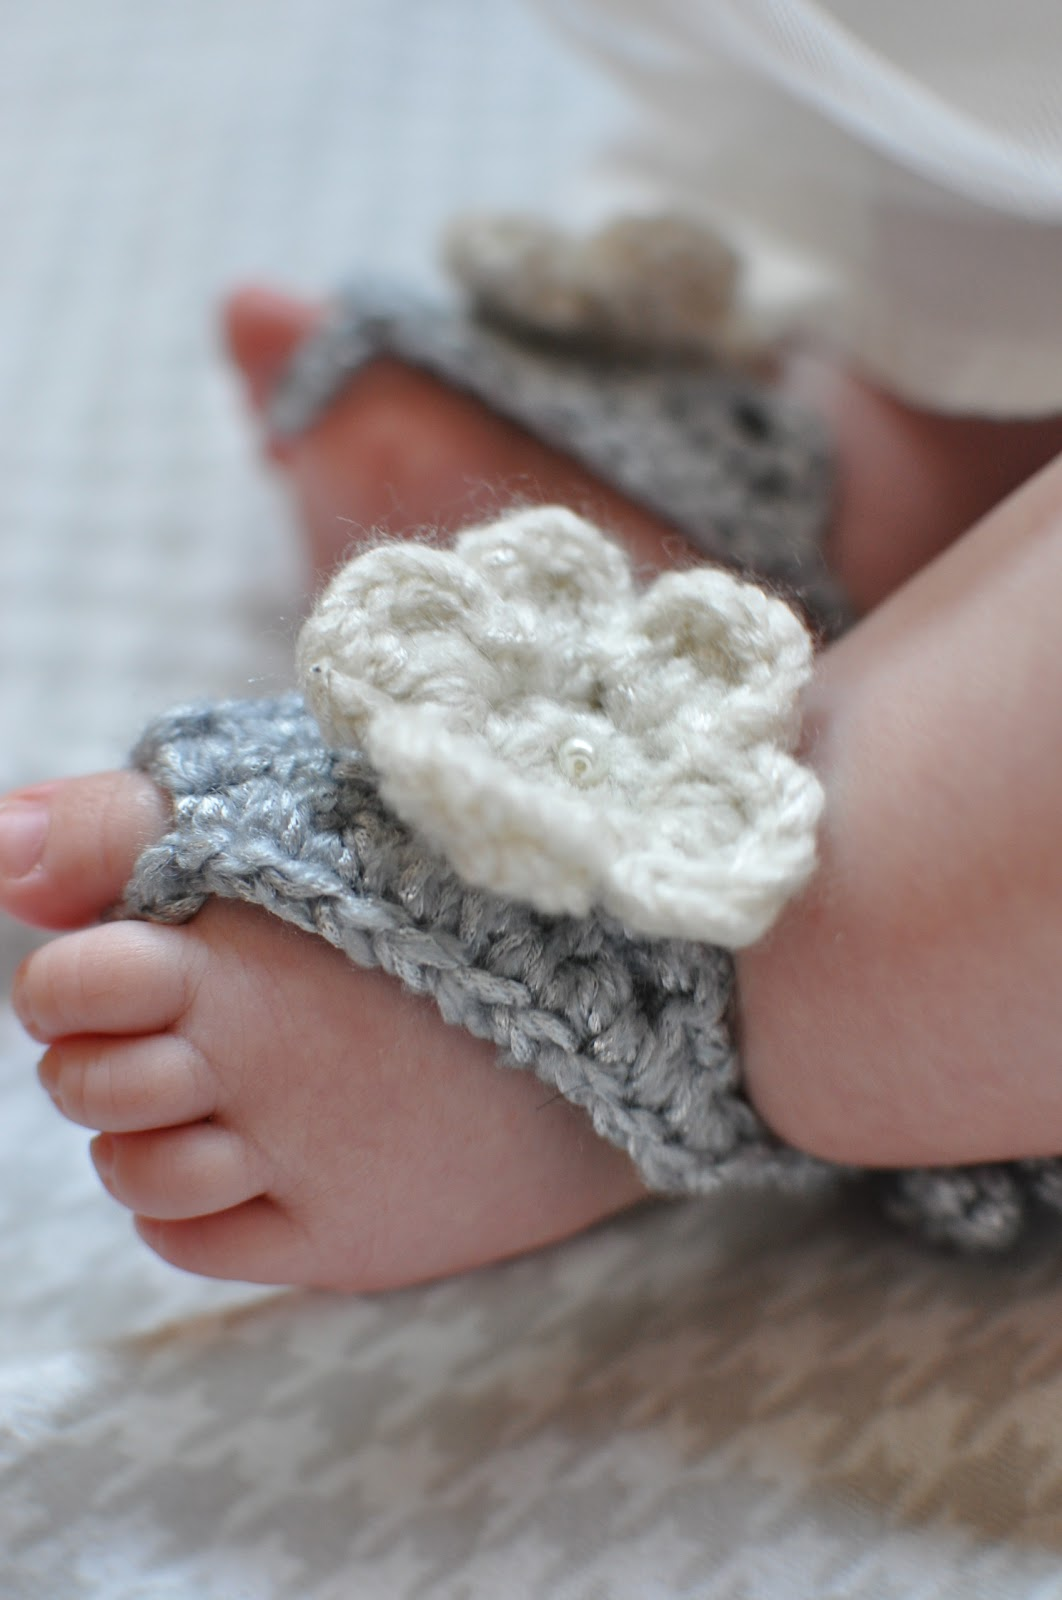 Crochet Pattern For Baby Barefoot Sandals : The Misadventures of Handmade: Barefoot Baby Sandals